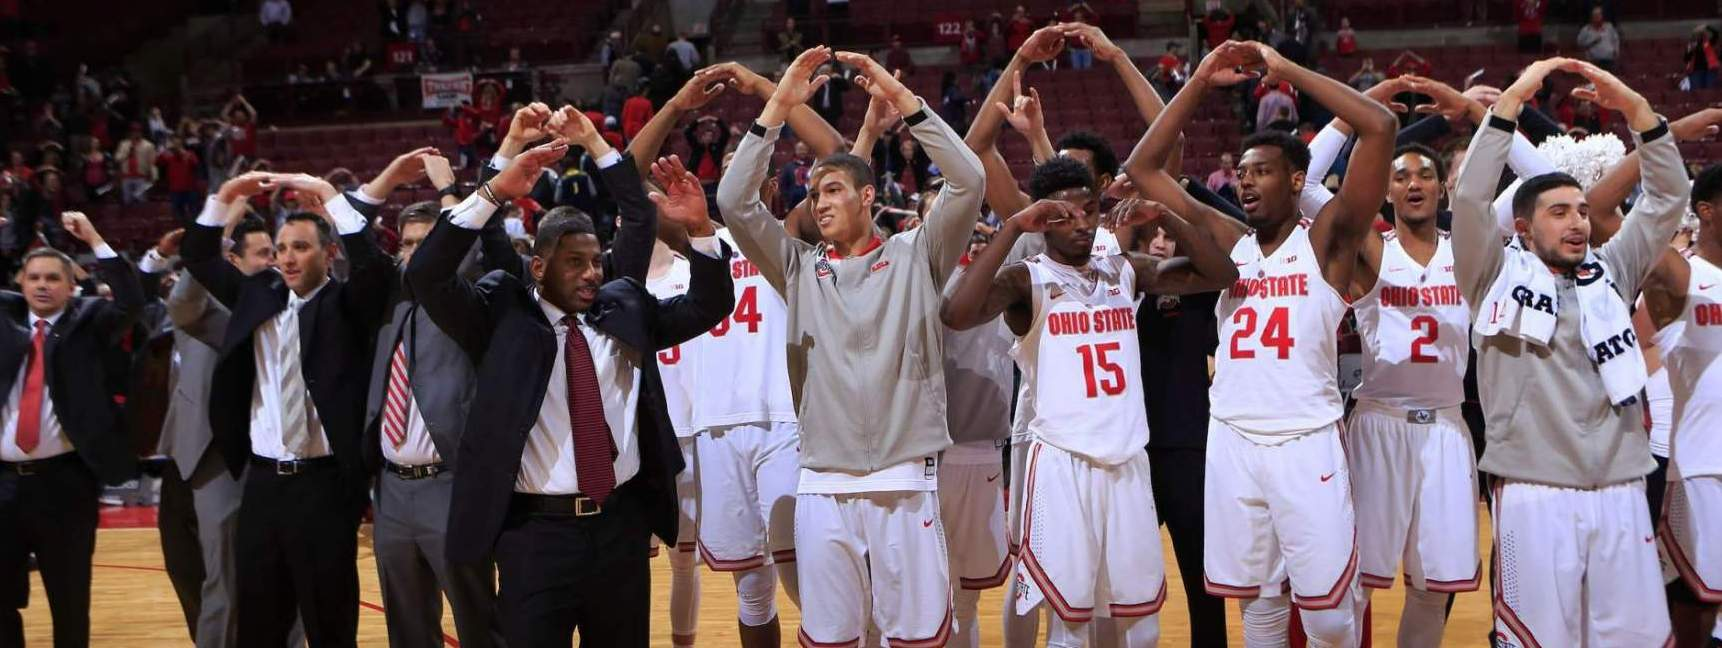 men's basketball news archive - ohio state buckeyes